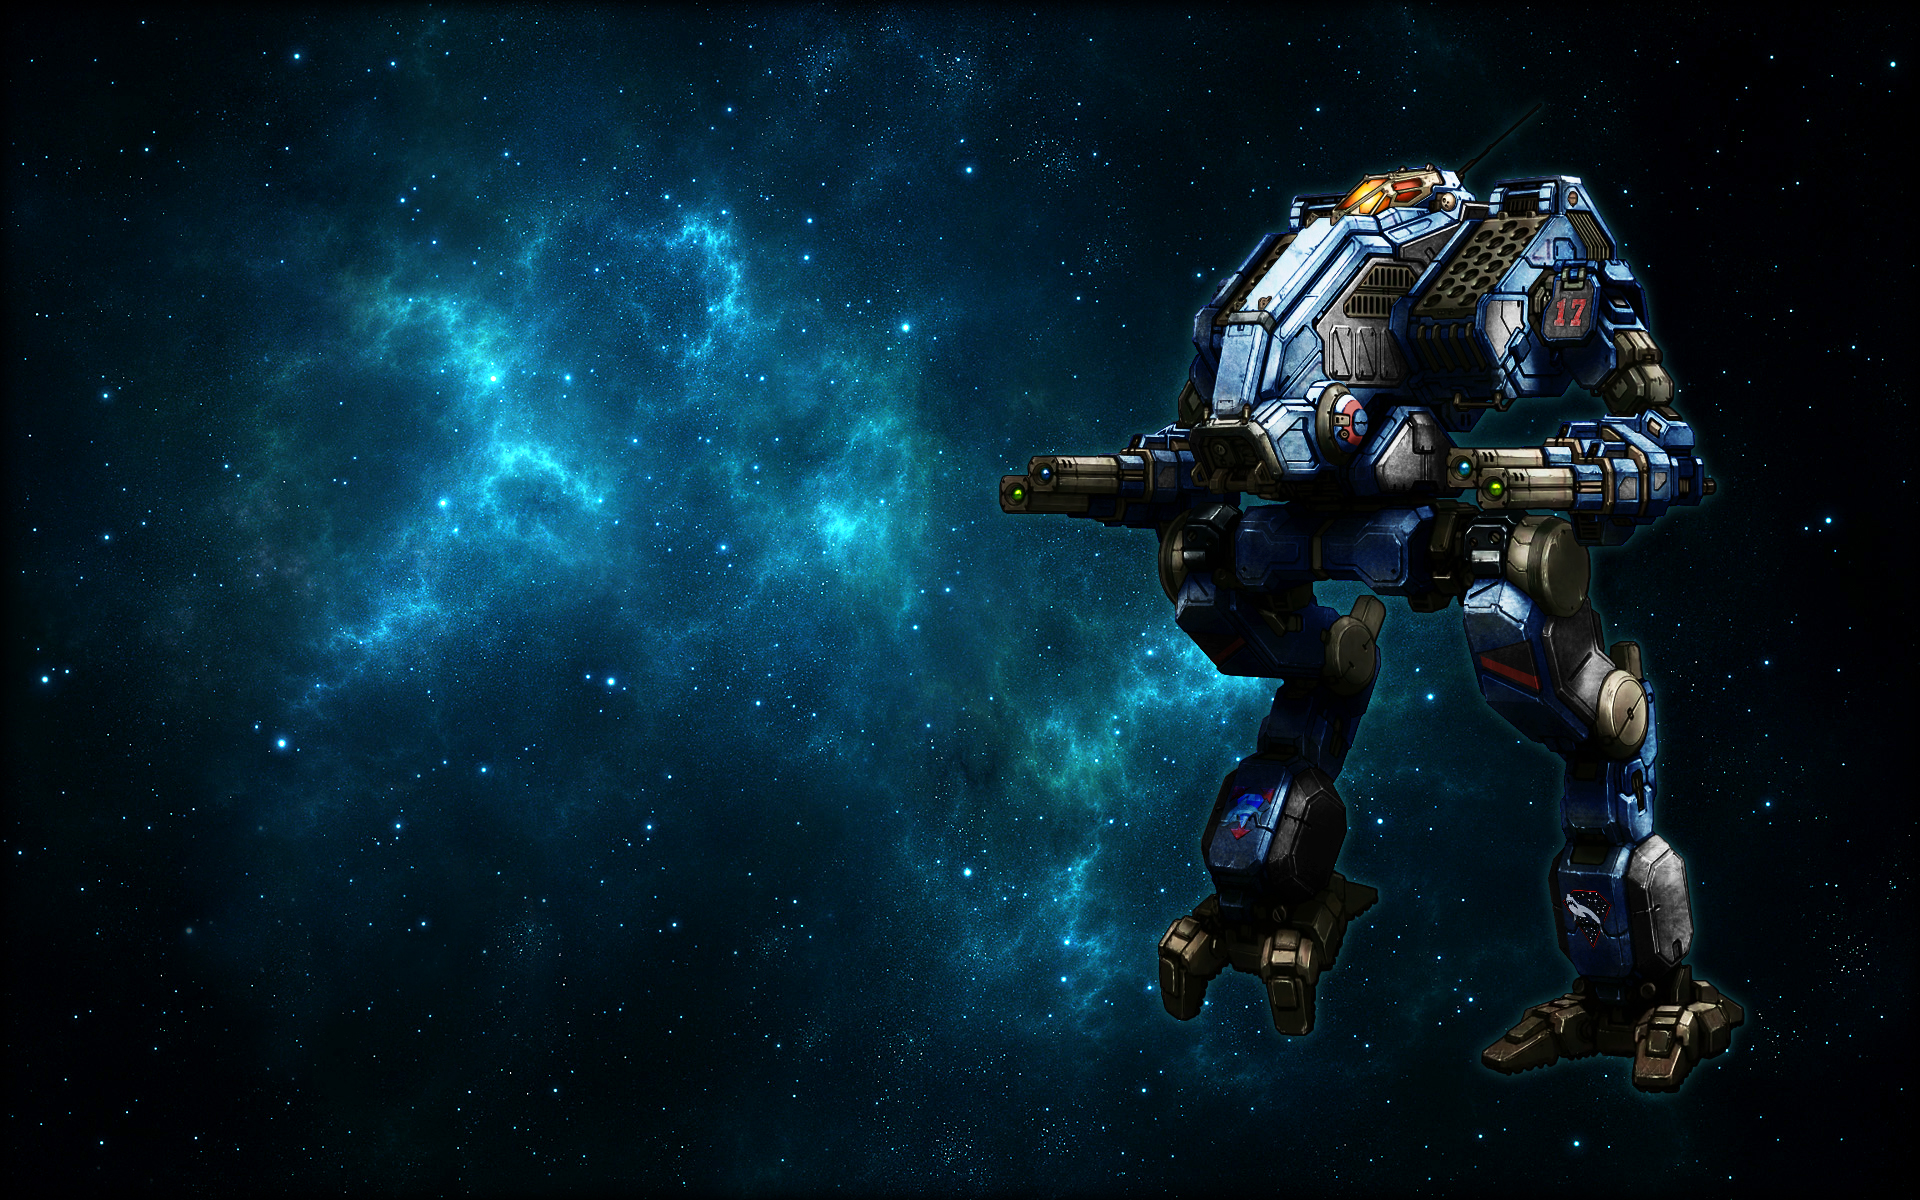 Wallpaper Space Mad Dog By Odanan